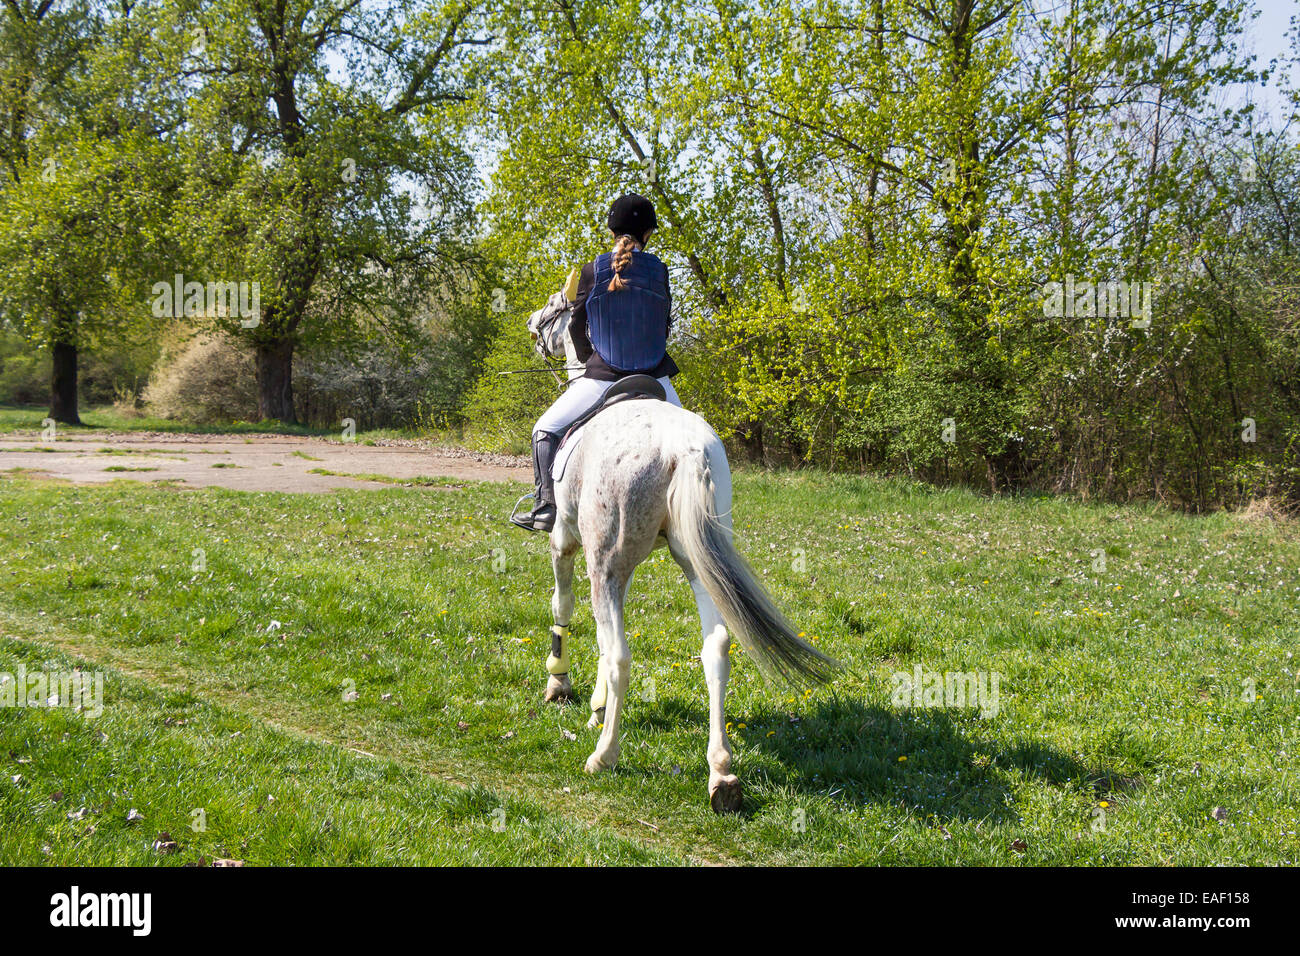 Young girl riding a horse in countryside - Stock Image